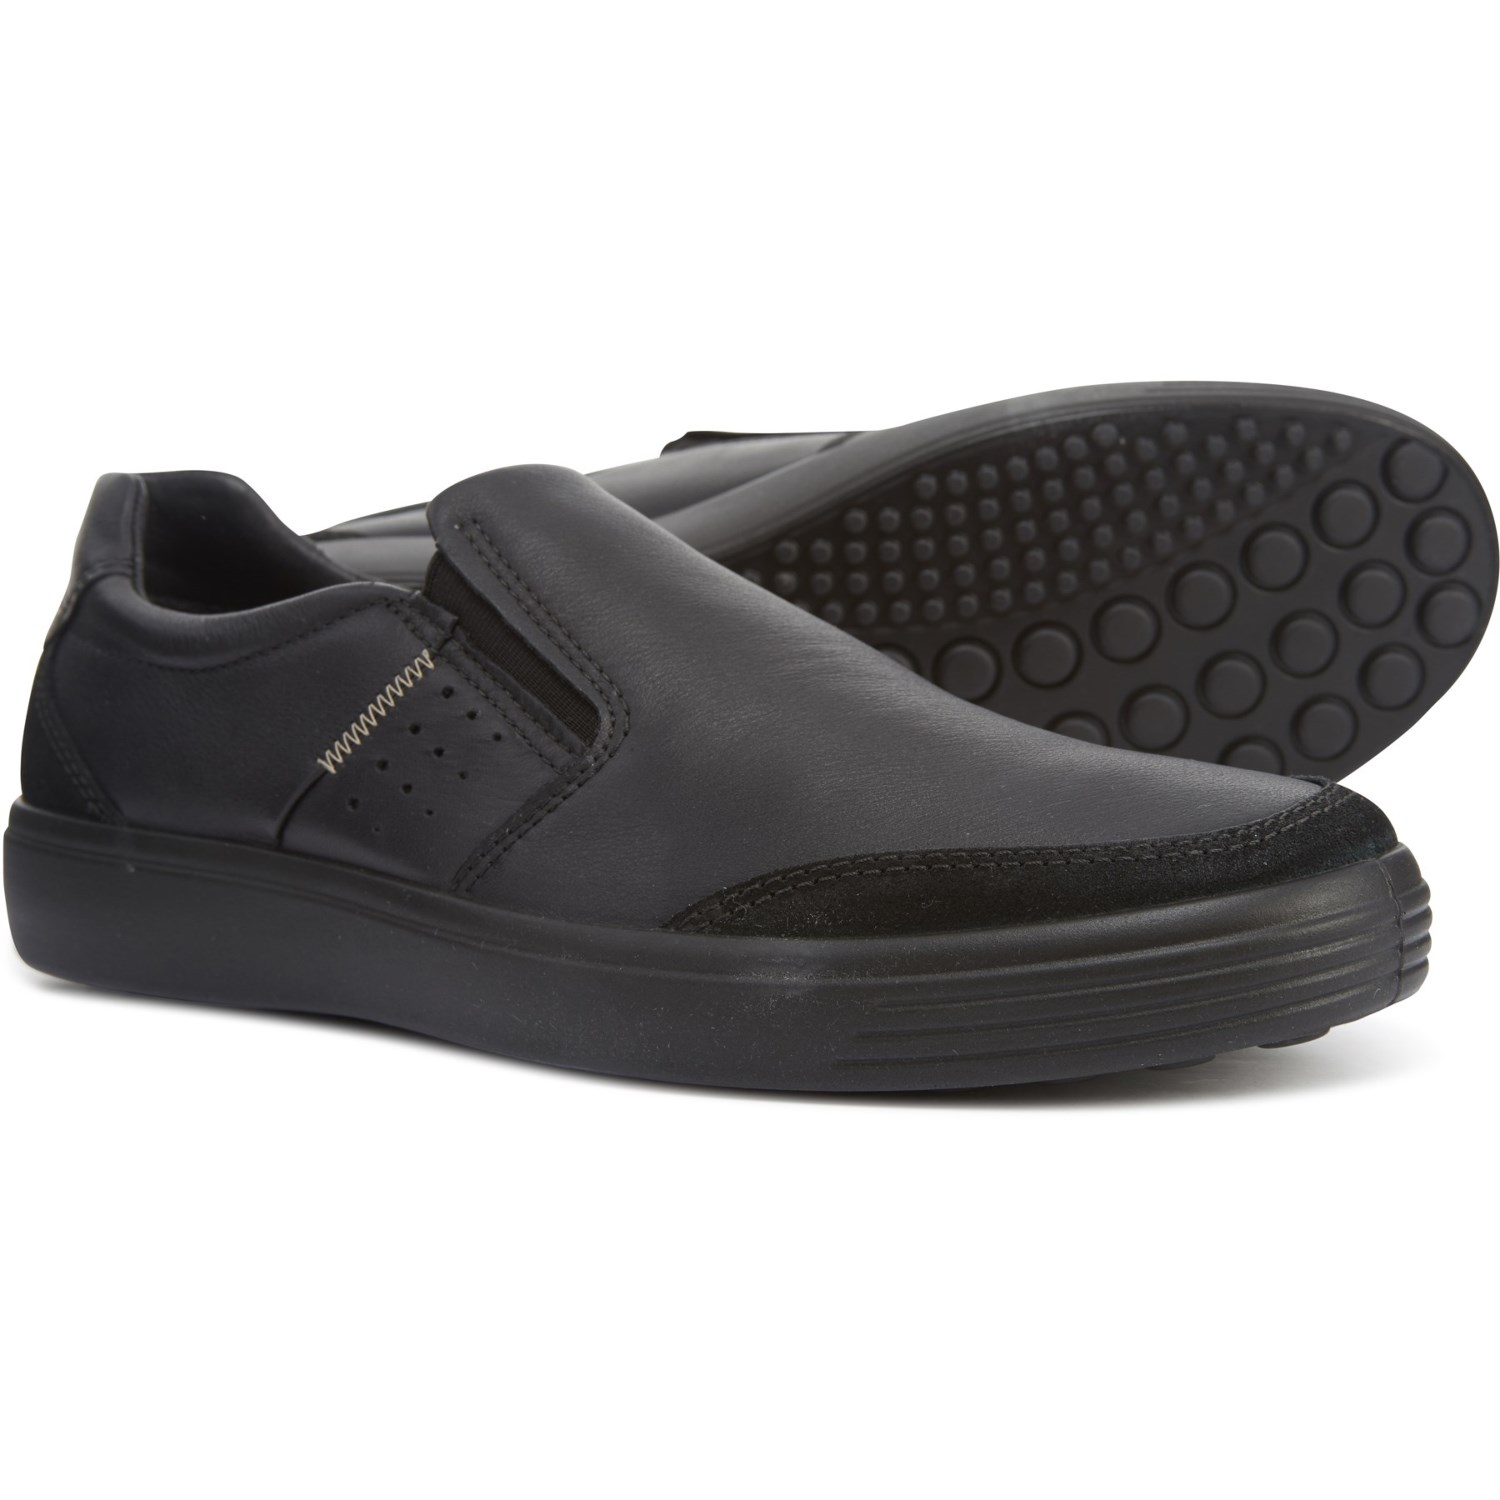 0b6fa7a5 ECCO Soft 7 Shoes (For Men) - Save 40%